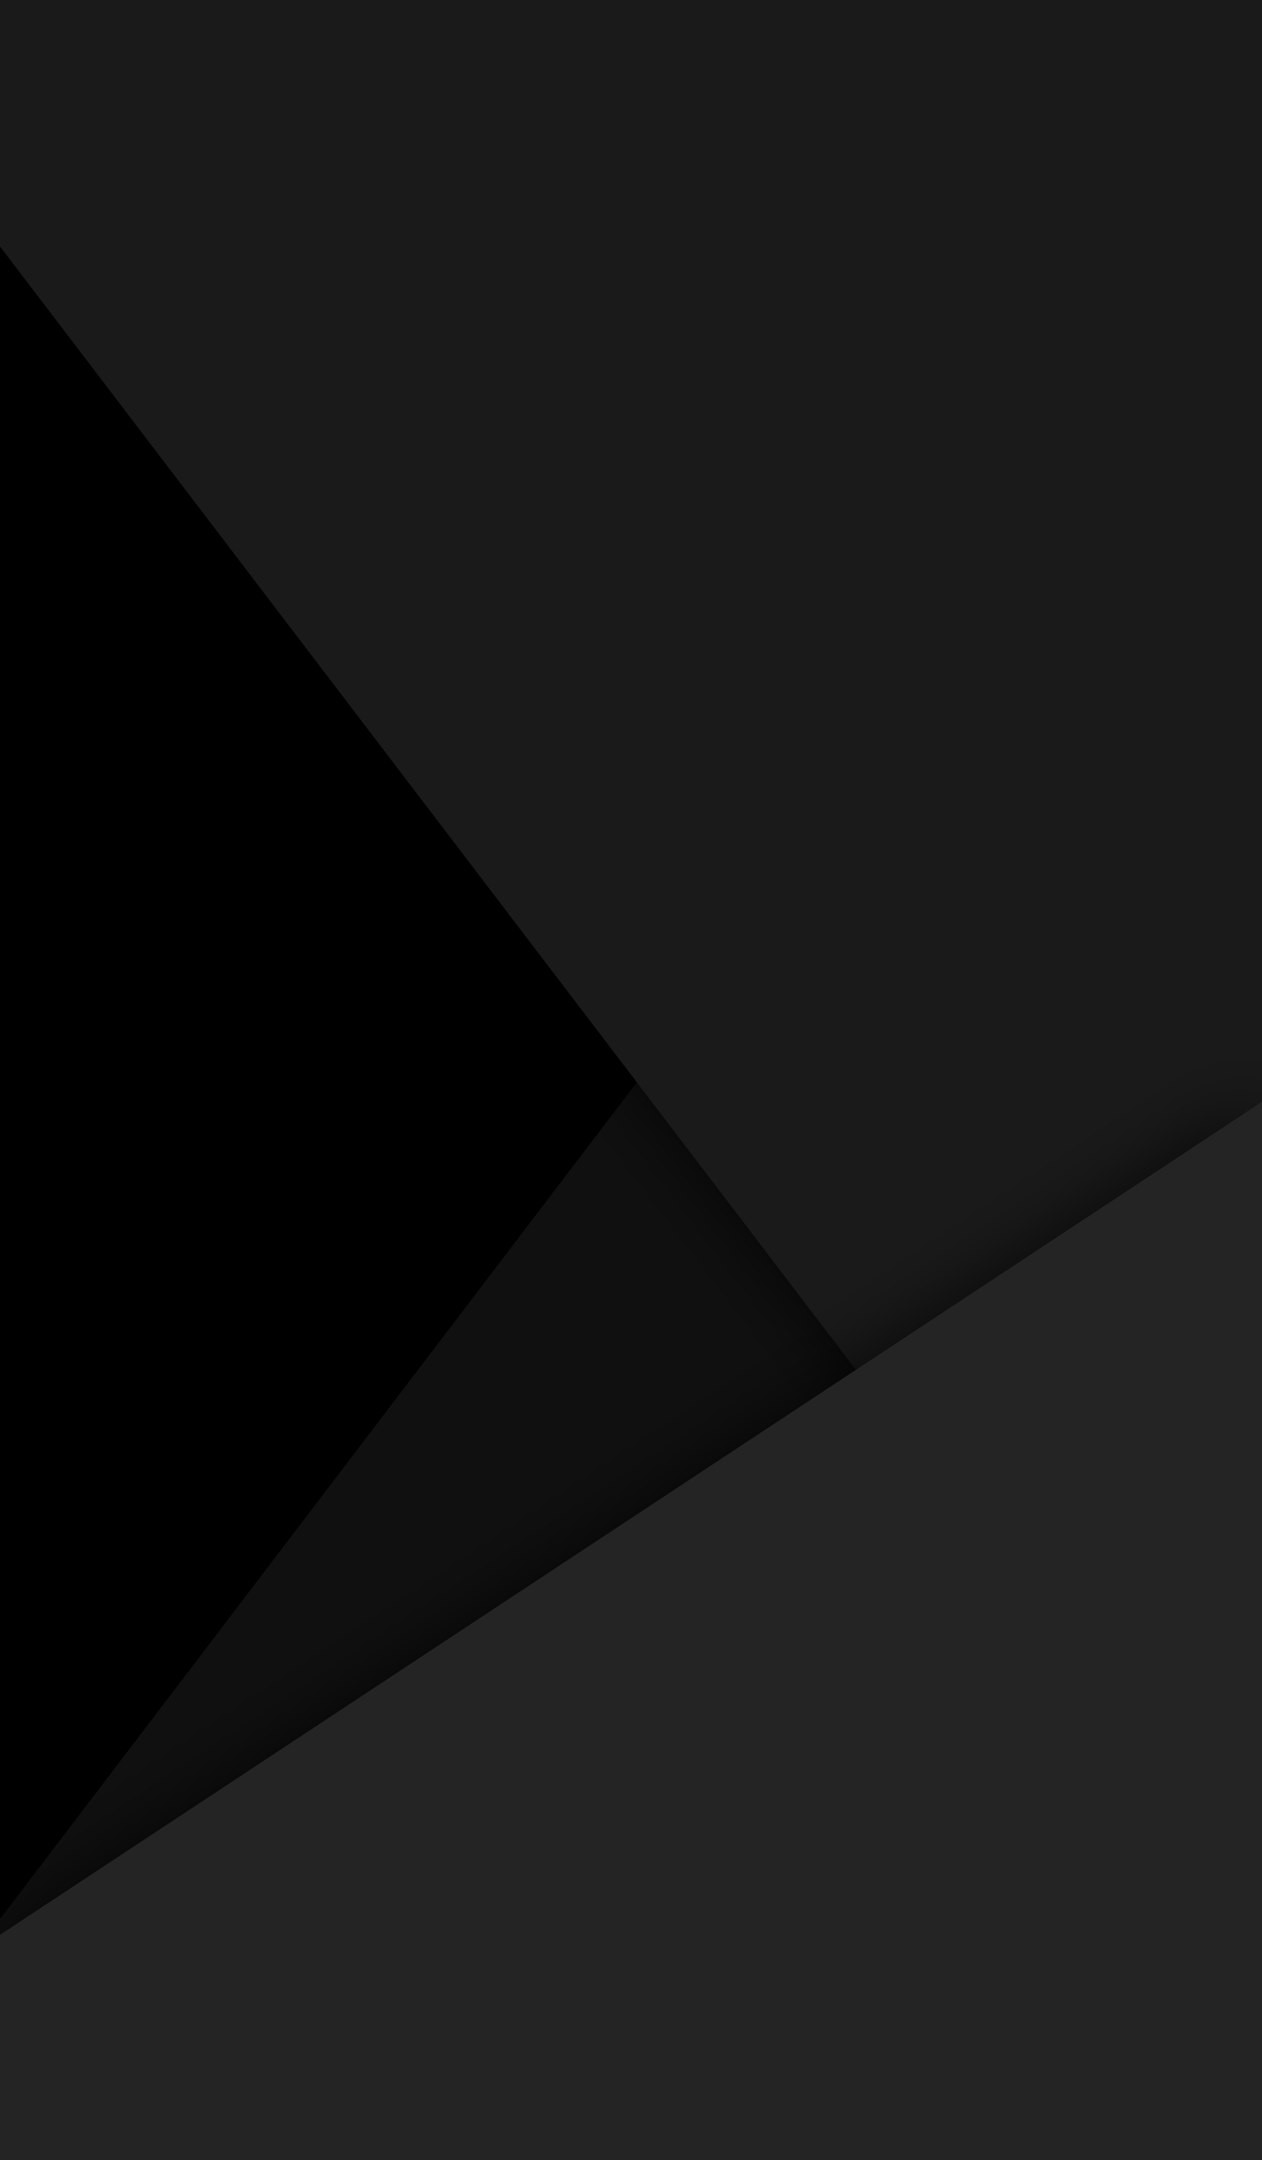 1262x2160 Black amoled Material design wallpaper